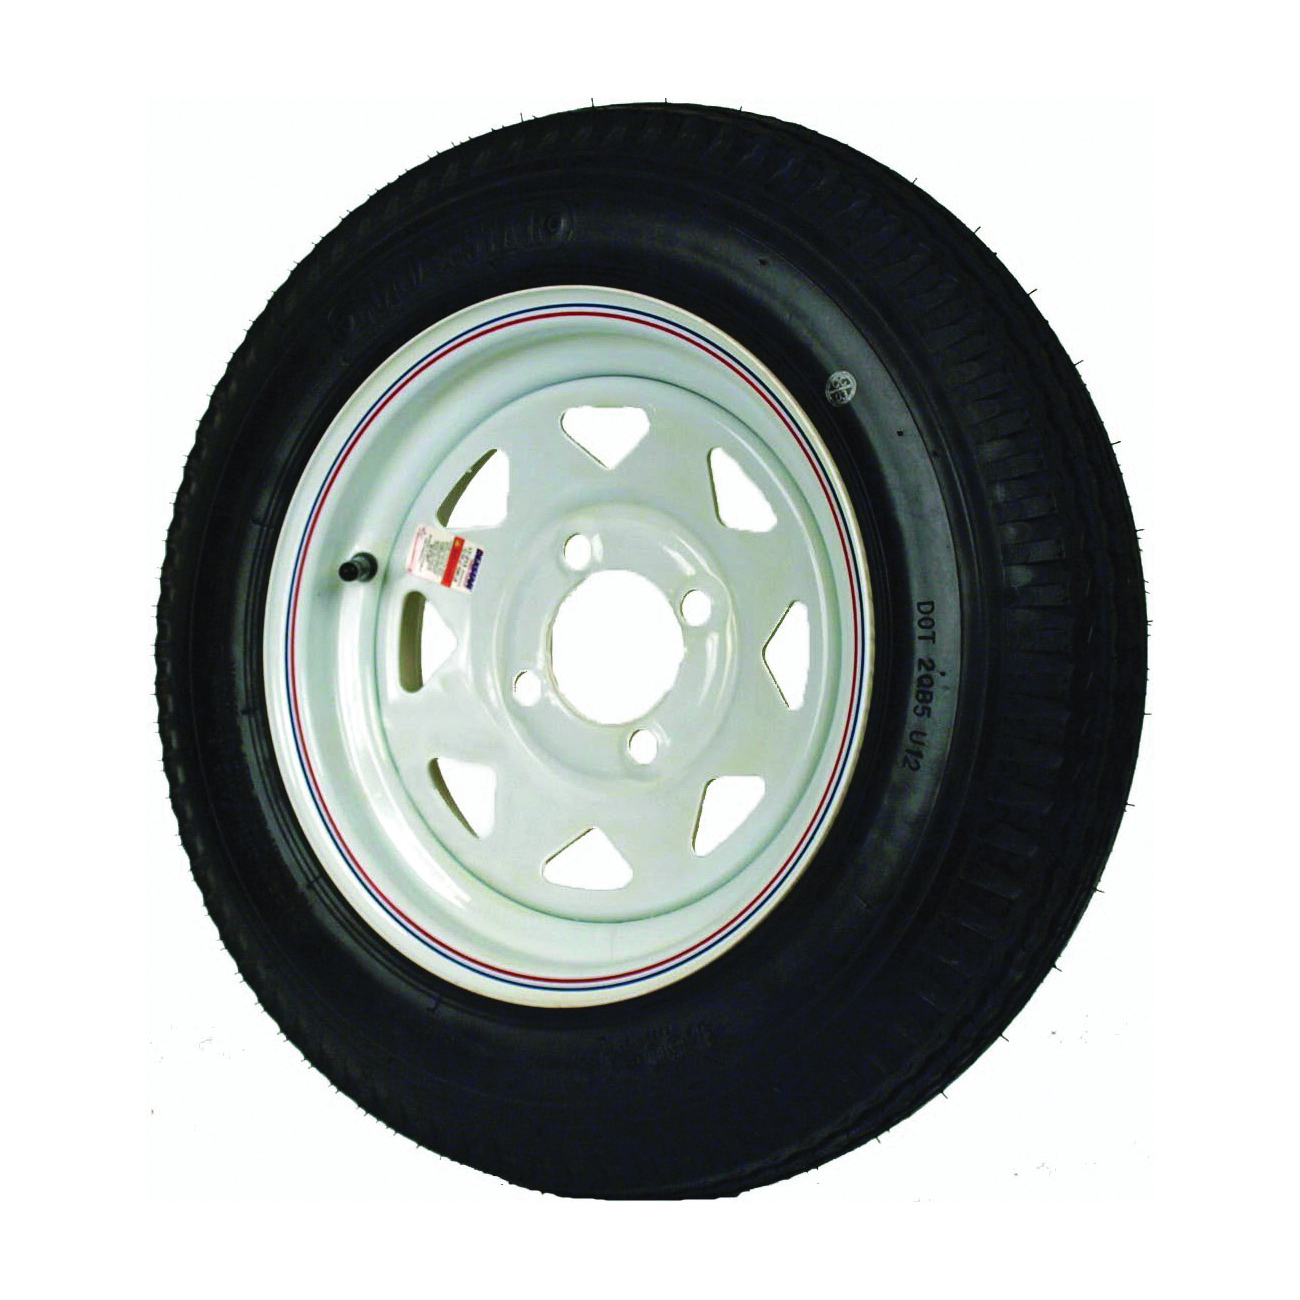 Picture of MARTIN WHEEL DM412B-4I Trailer Tire, 1120 lb Withstand, 4 in Dia Bolt Circle, Rubber